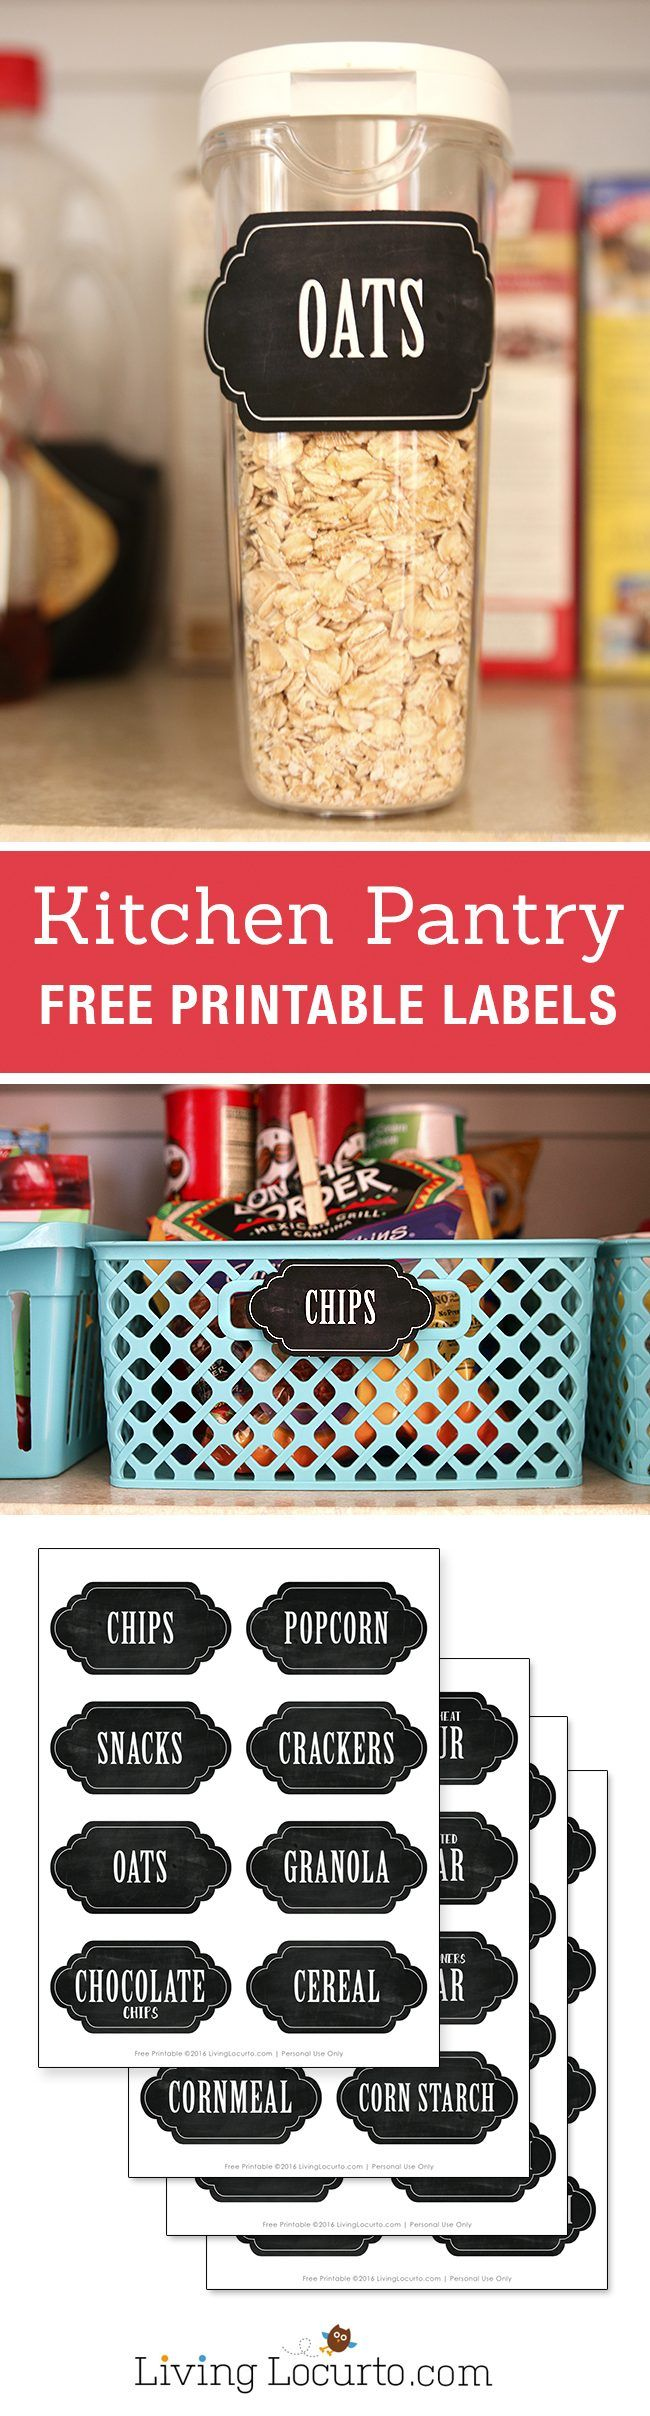 Makeover your kitchen pantry. Inspiring kitchen pantry organization ideas with free printable chalkboard labels. Easy home organizing ideas. LivingLocurto.com